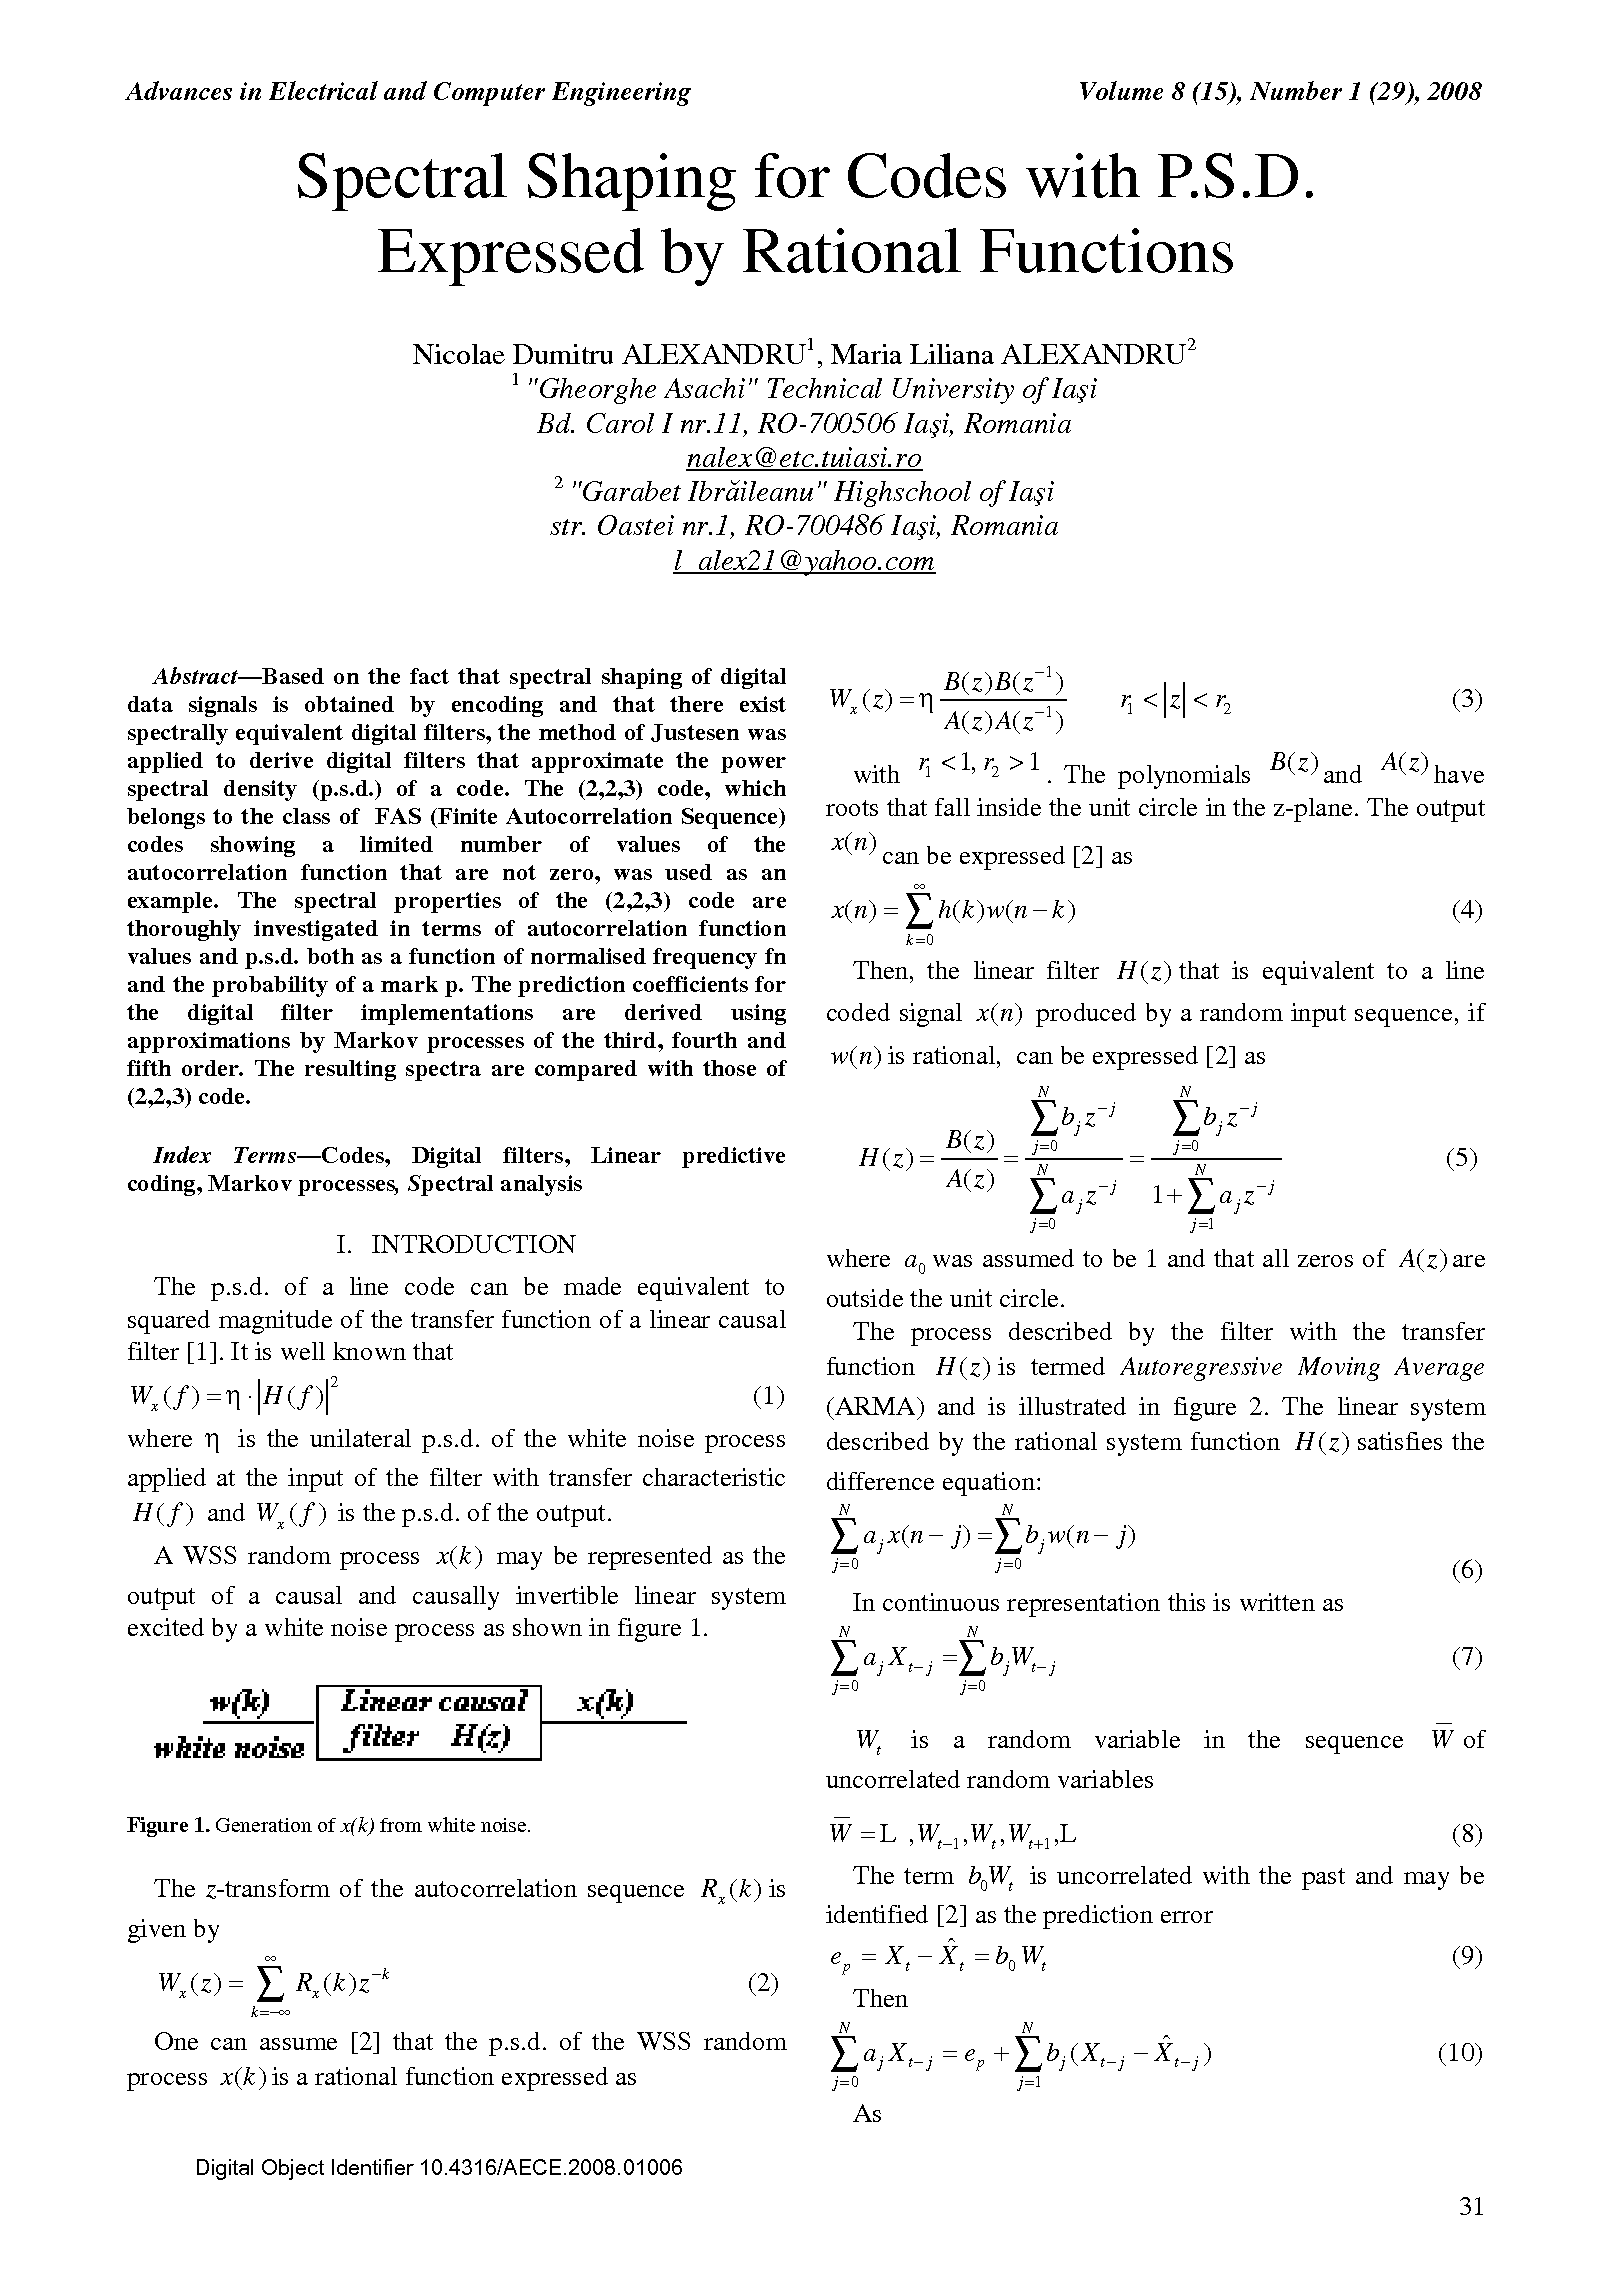 PDF Quickview for paper with DOI:10.4316/AECE.2008.01006